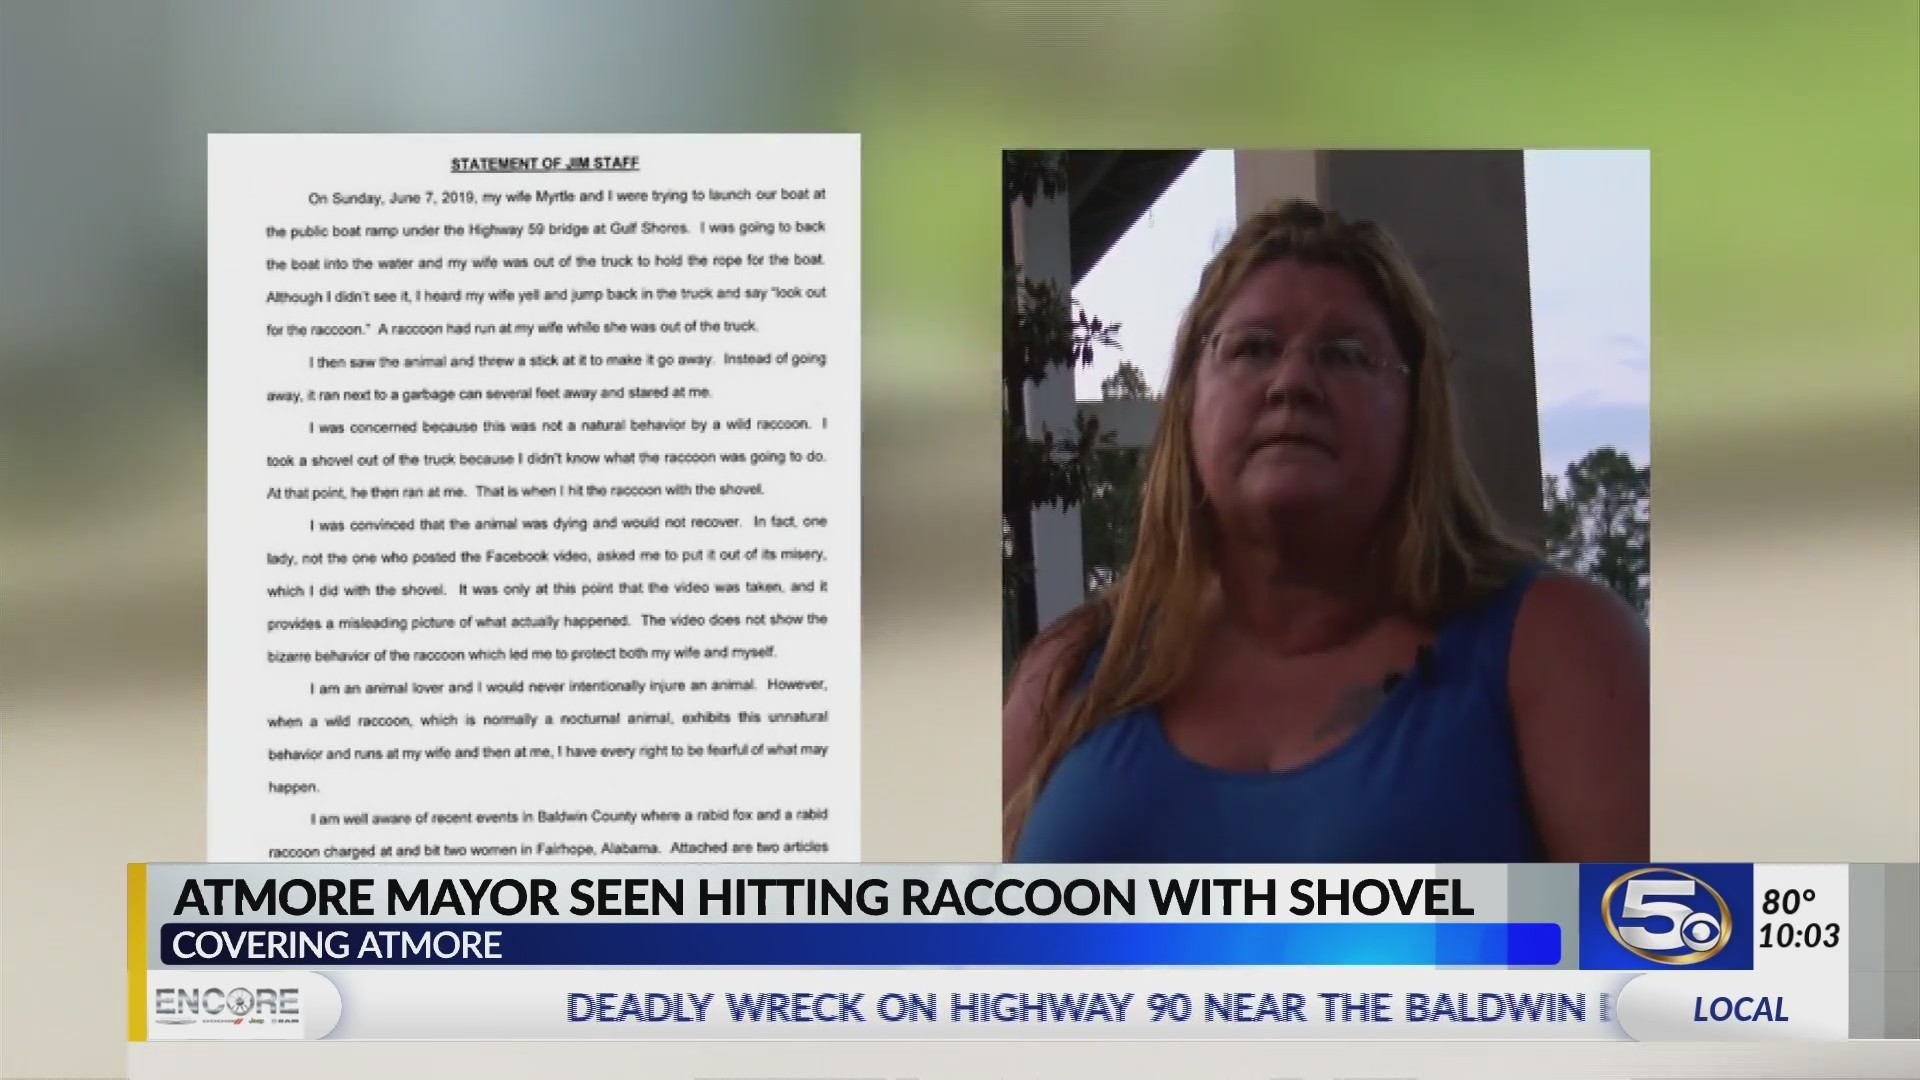 Raccoon beating: Video shows Atmore mayor hitting it with a shovel follow up